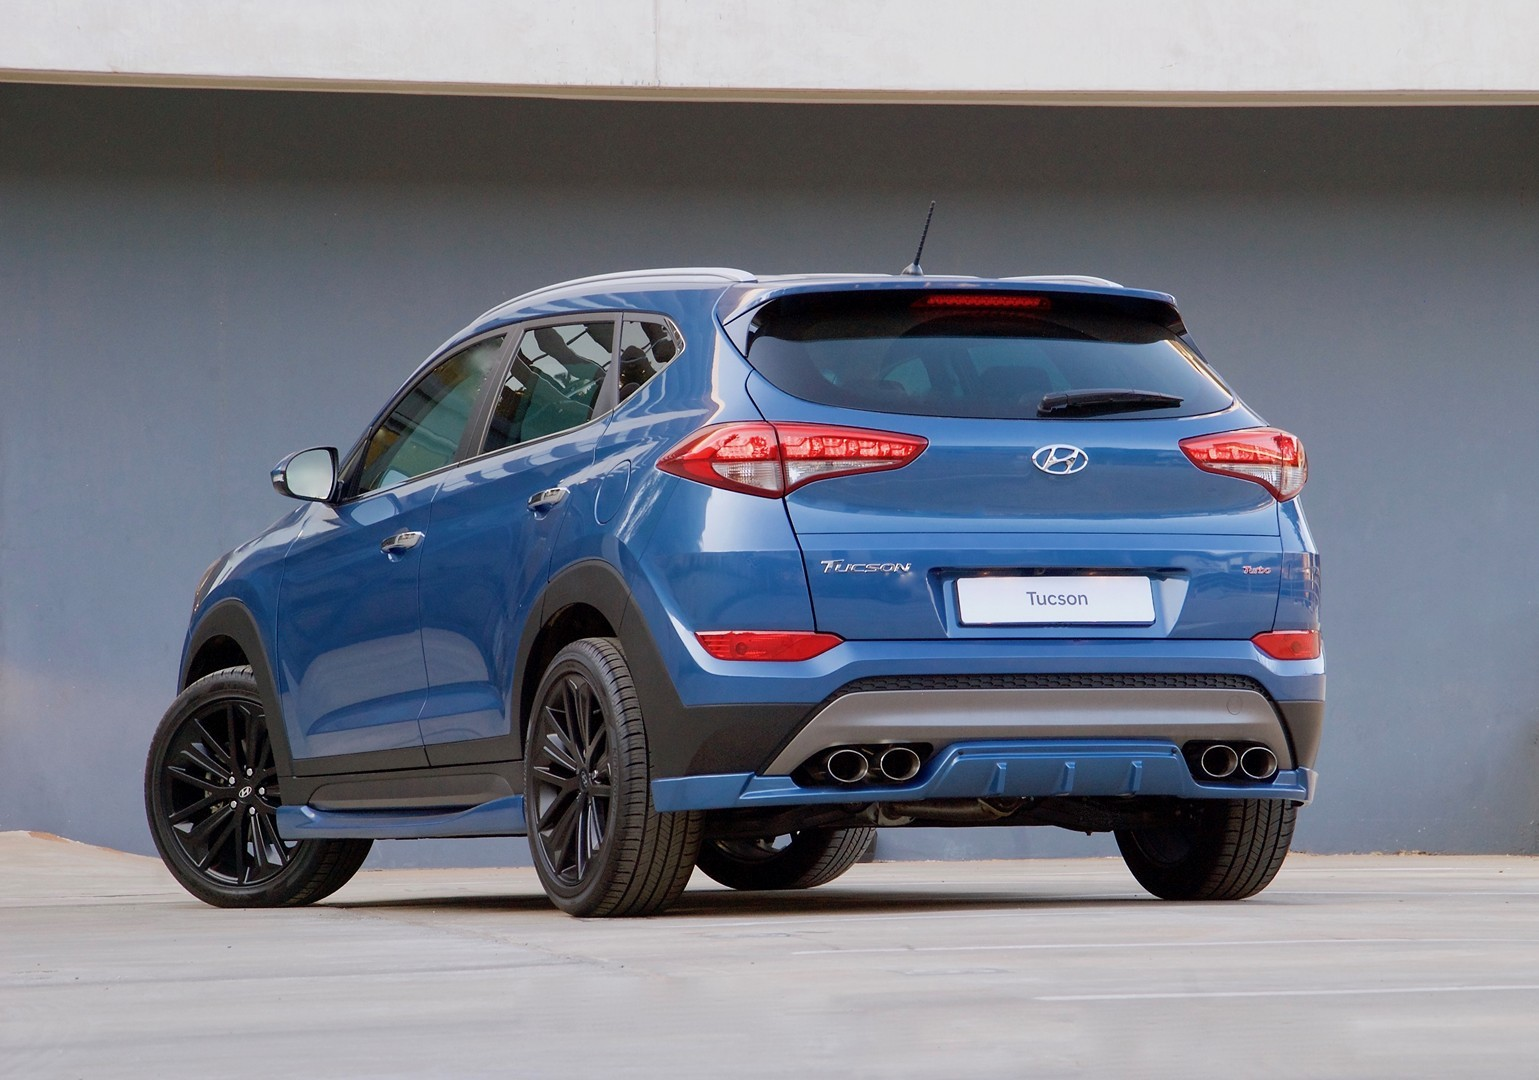 hyundai tucson sport announced in south africa gets 150kw tune performancedrive. Black Bedroom Furniture Sets. Home Design Ideas